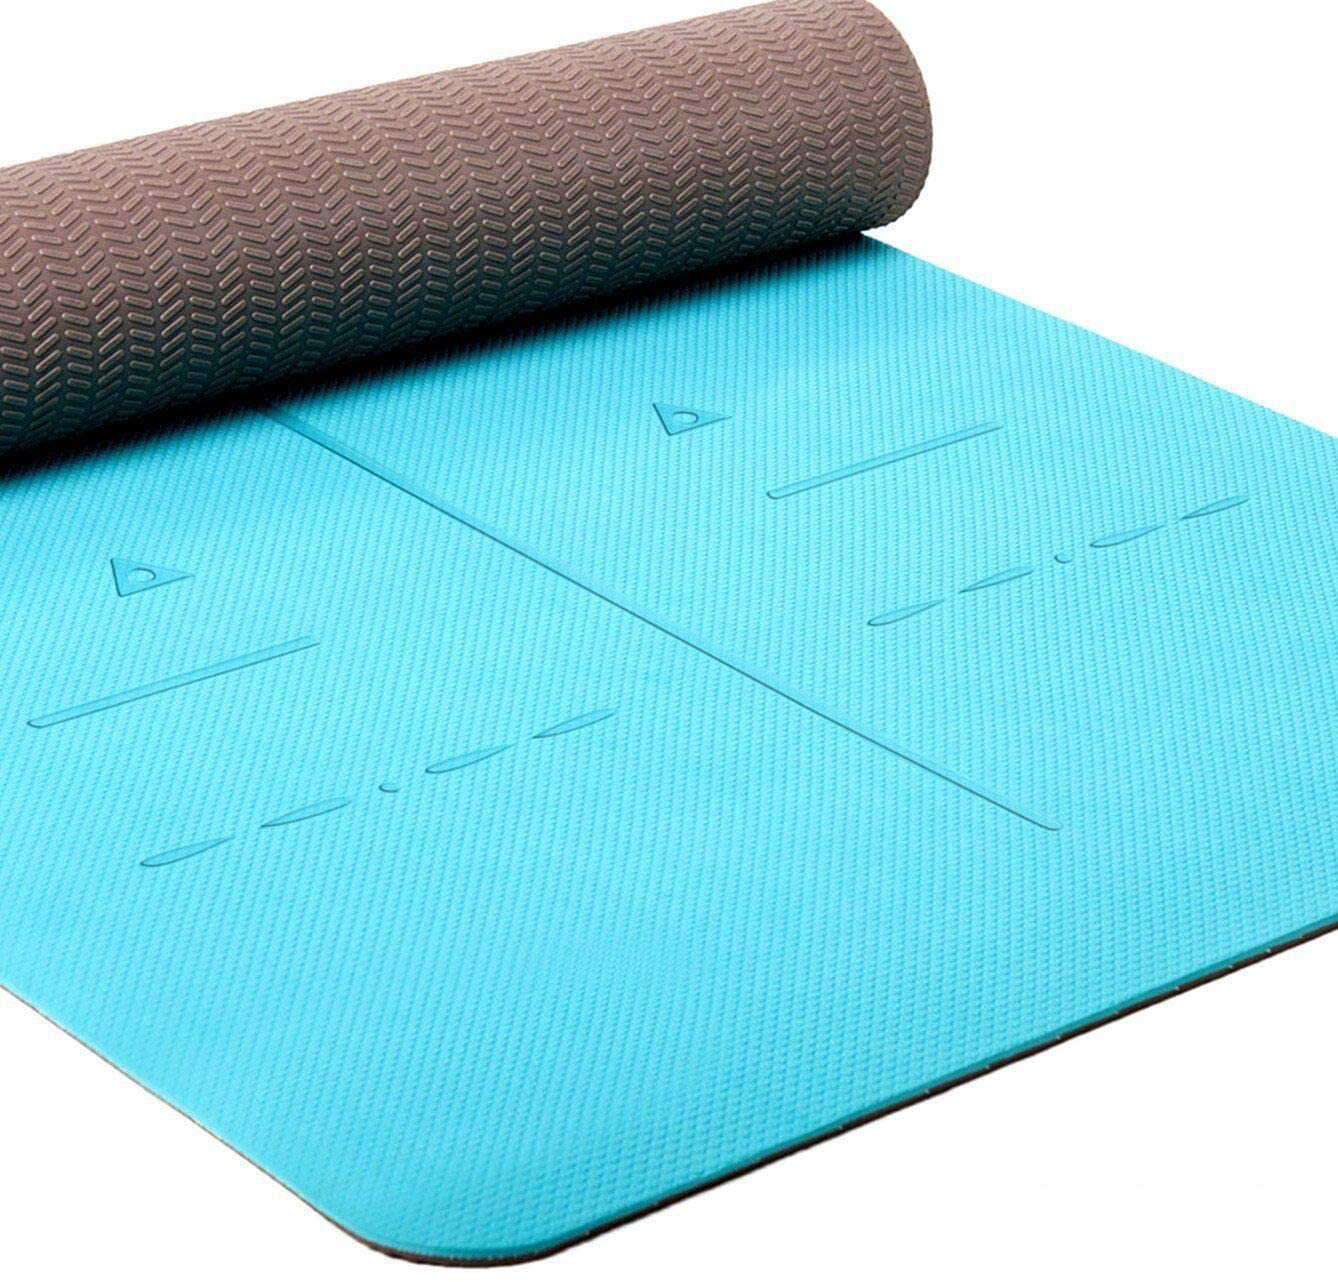 Heathyoga Eco-Friendly Yoga Mat, 1/4-Inch